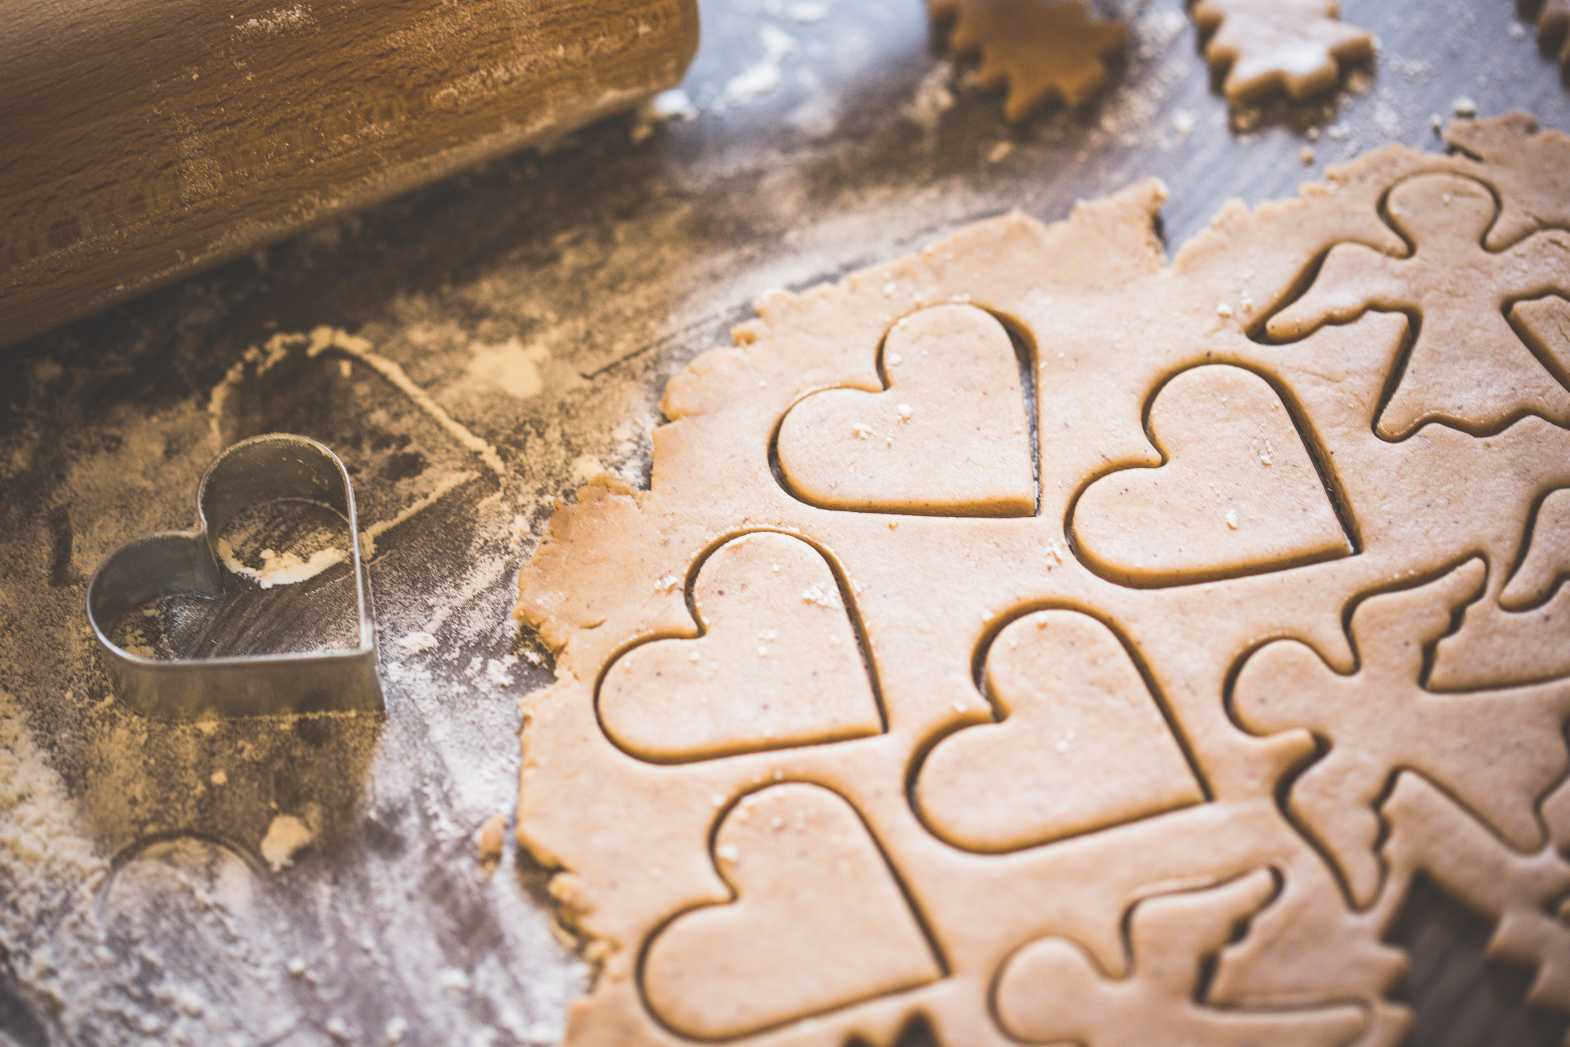 christmas baking free stock image